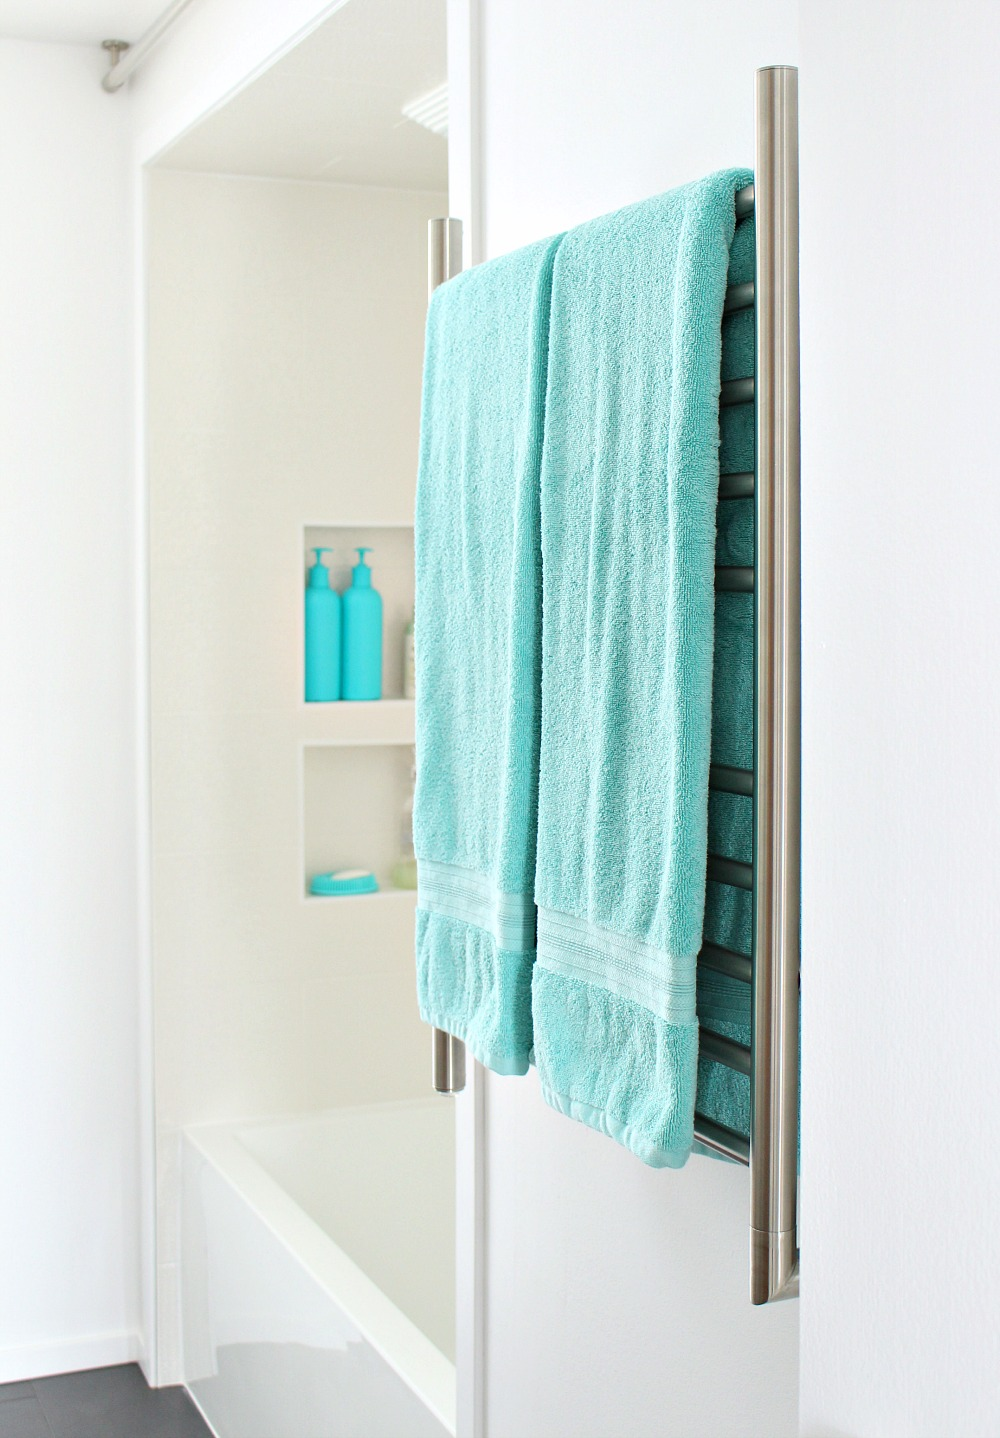 How to add a spa-like feel to a bathroom on a budget